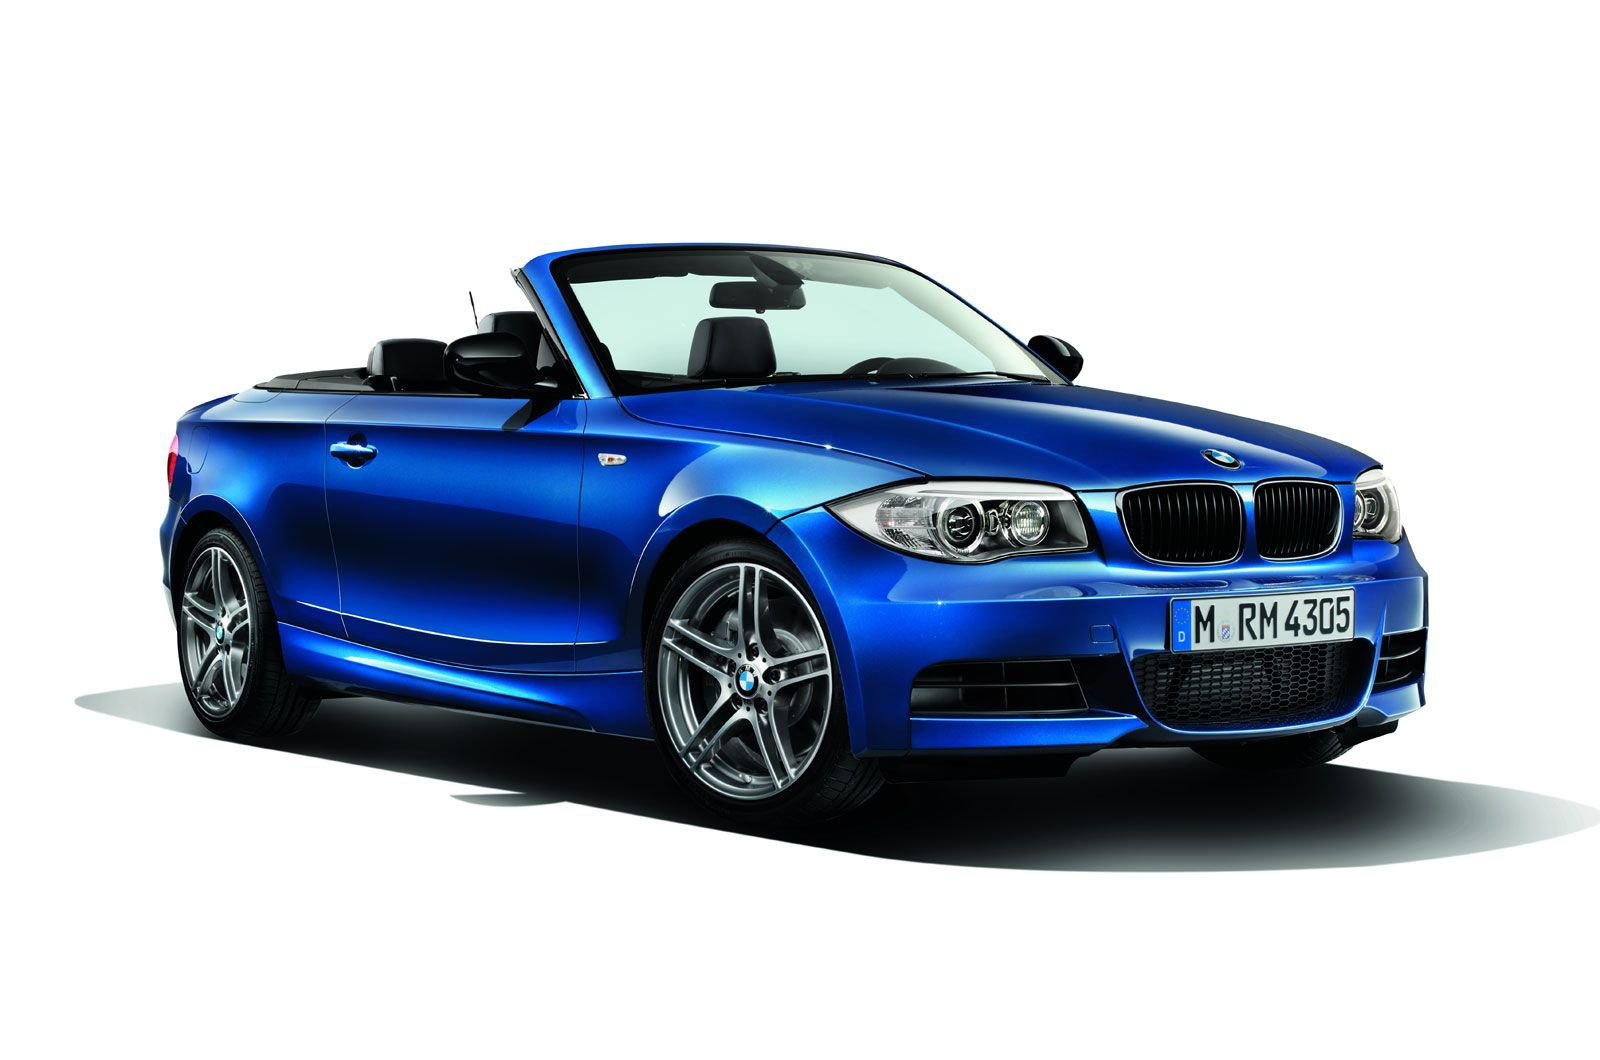 2017 Convertible Cars Makes Bmw 135is Photo Gallery